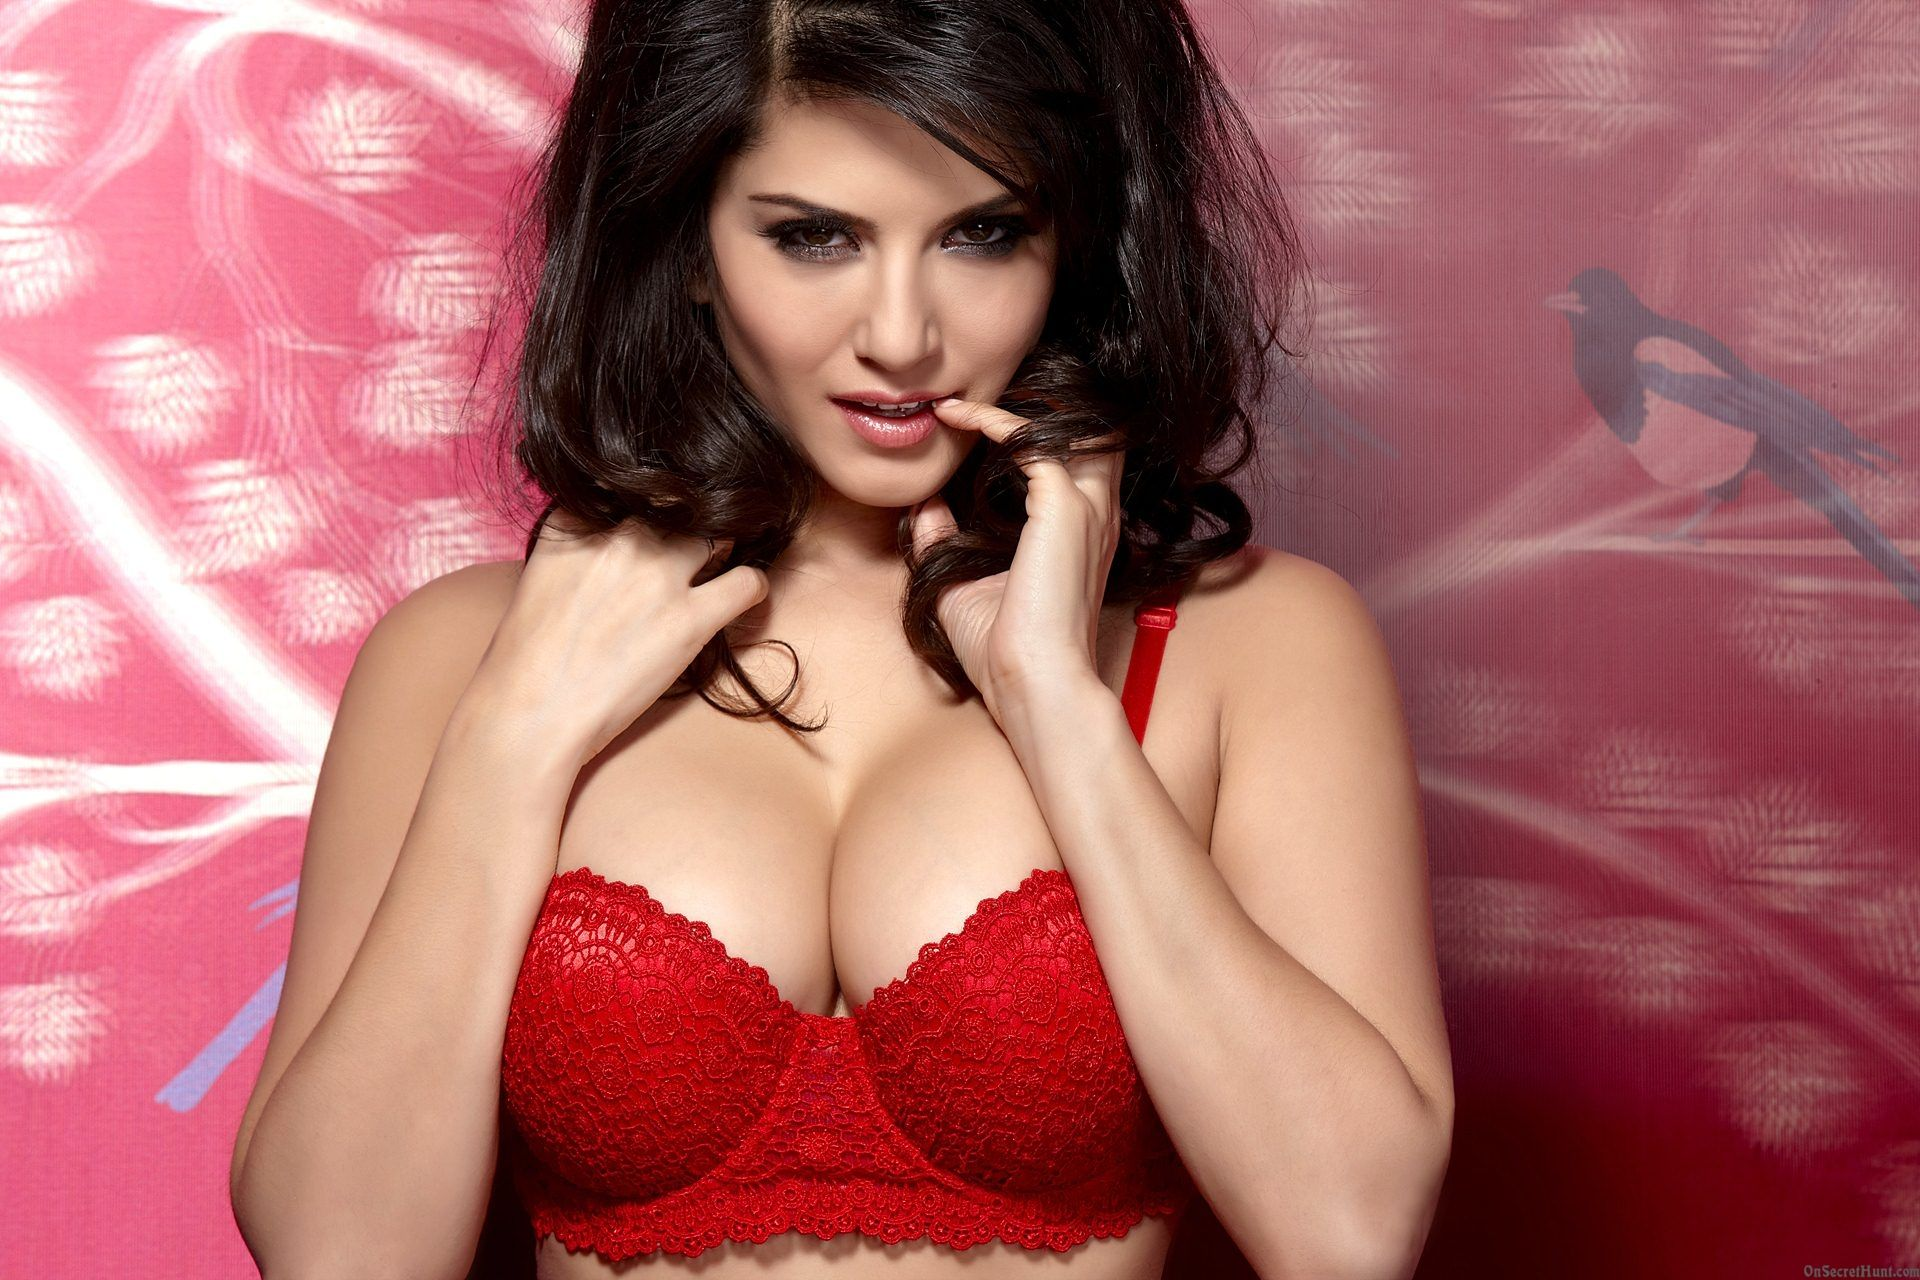 Sunny Leone Image Hd Live HD Wallpapers PC LL